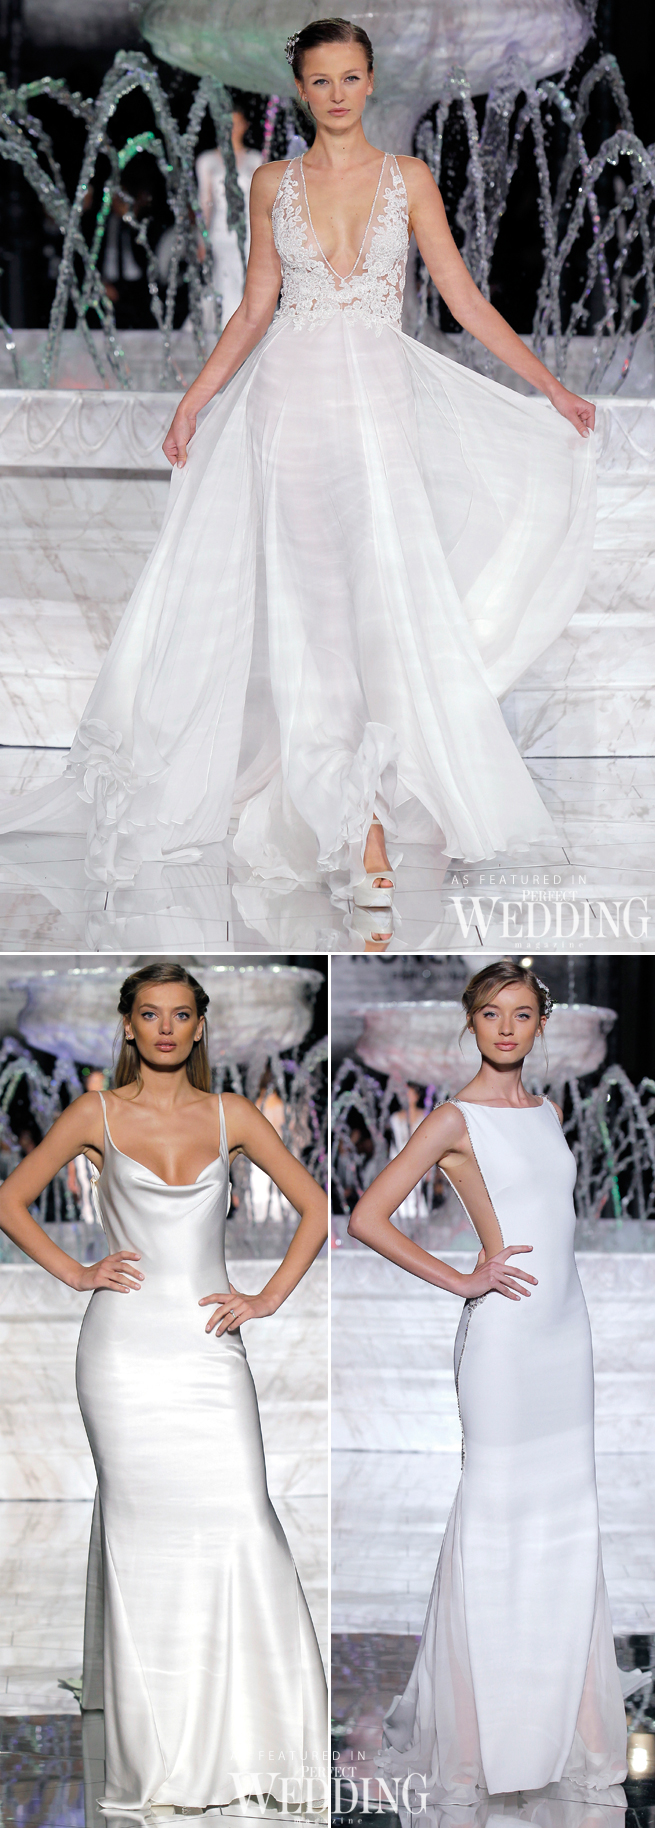 Pronovias, Atelier Pronovias 2018, Pronovias Fashion Show, Hervé Moreau, Perfect Wedding Magazine, Perfect Wedding Blog, Barcelona Bridal Trends